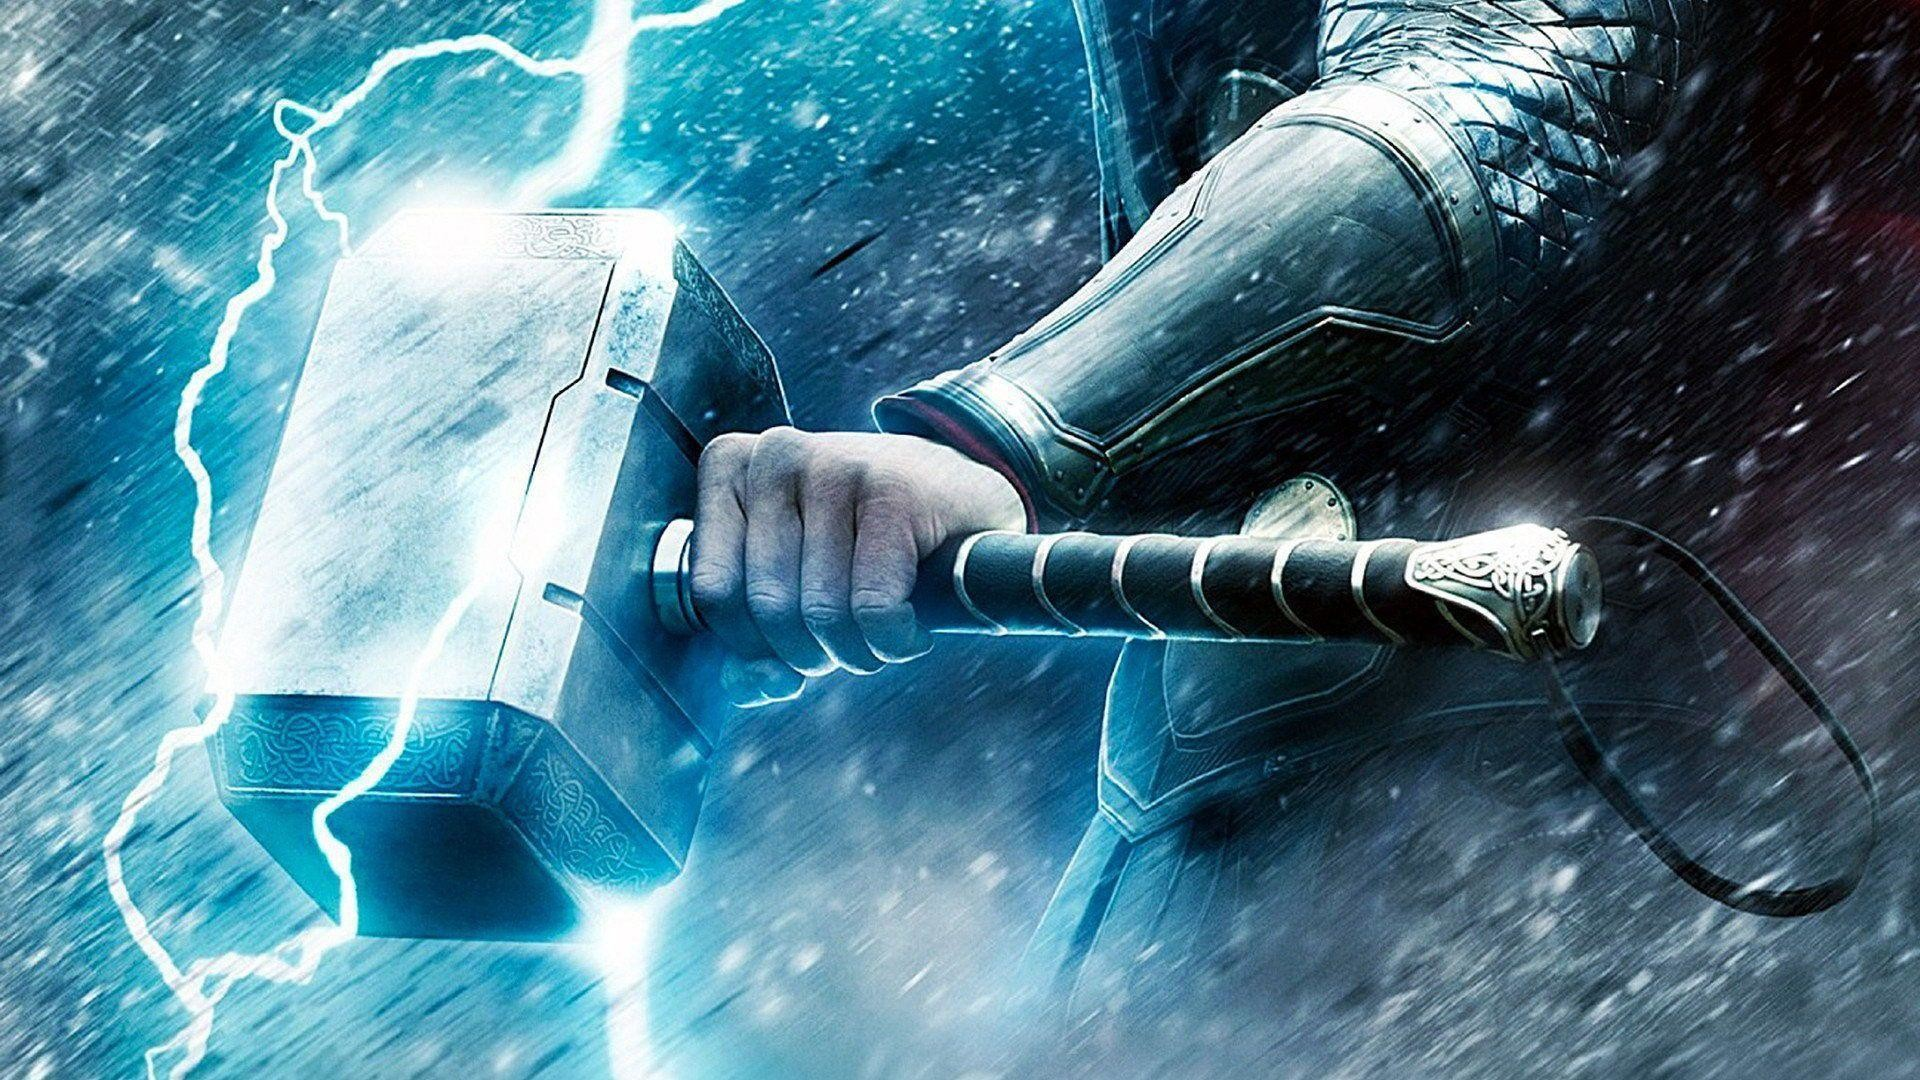 thor wallpapers (77+ images)